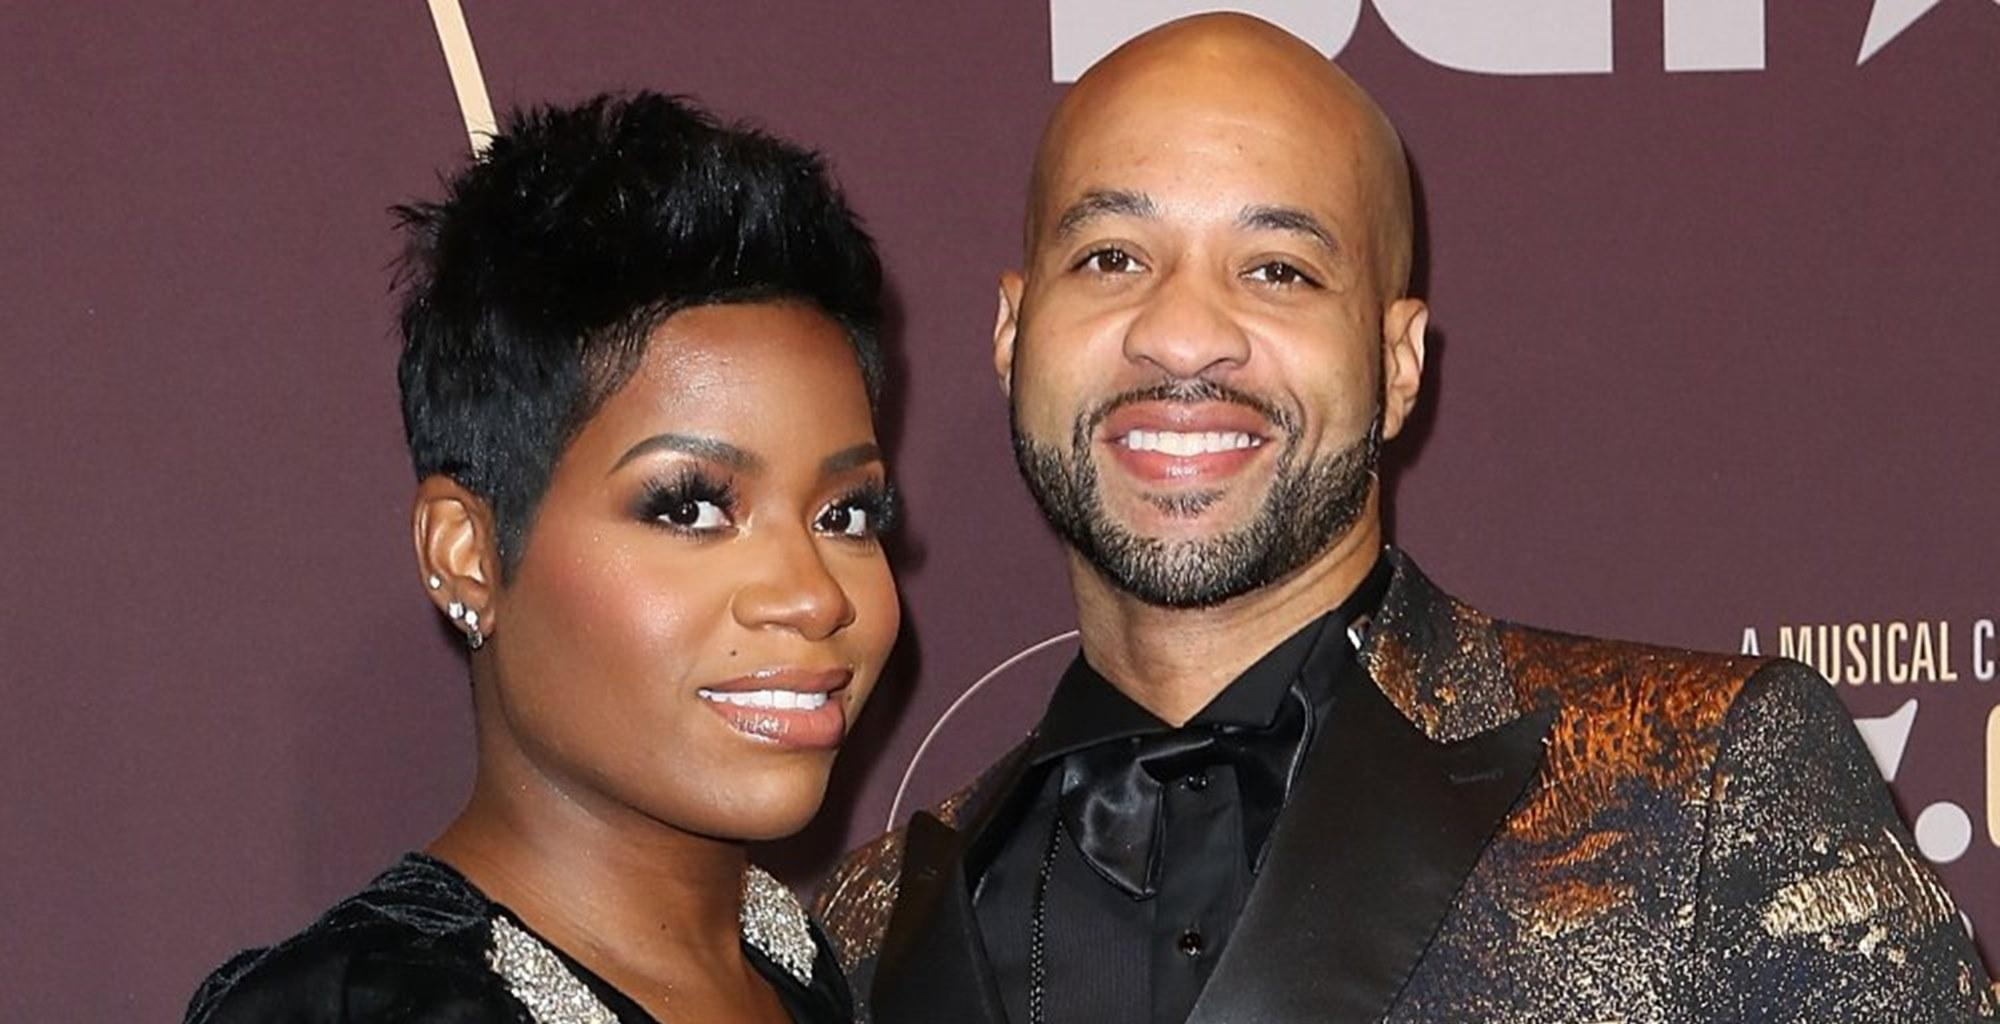 Fantasia Barrino Dances Provocatively And Kisses Husband Kendall Taylor On A Famous Beyoncé Song In Raunchy Video